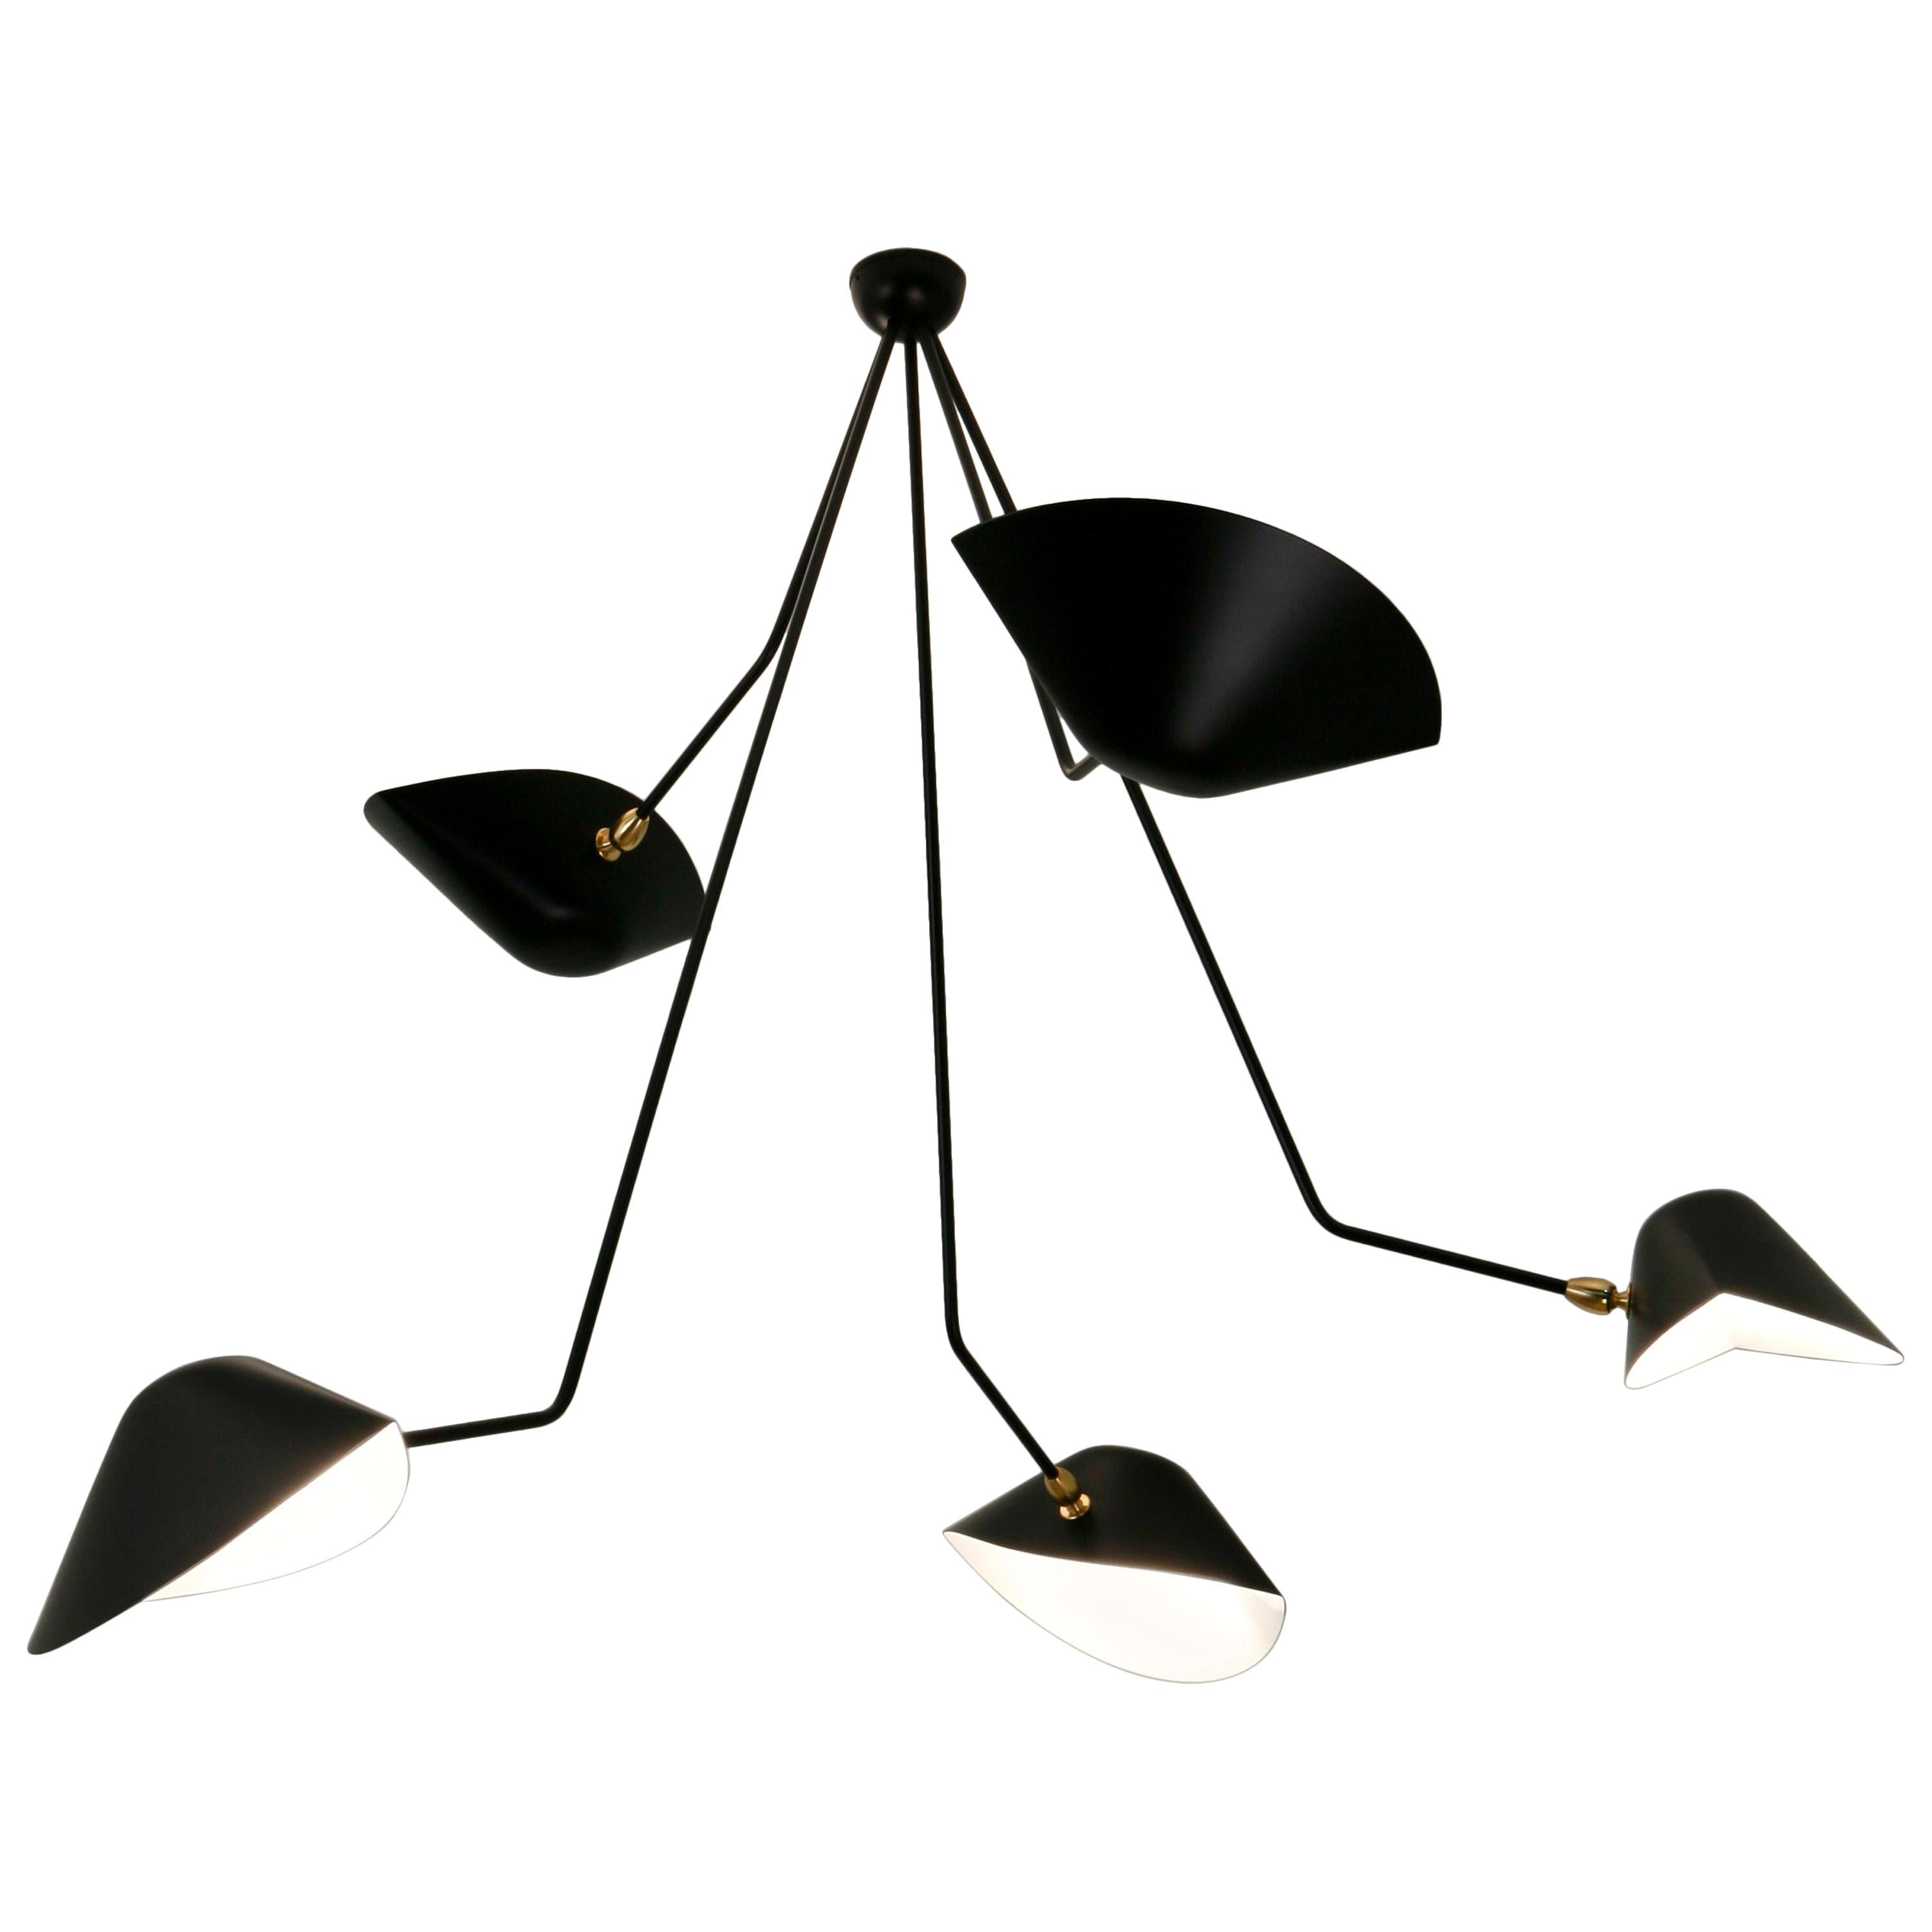 Ceiling Pendant Spider Lamp with Five Broken Arms by Les Editions, Serge Mouille